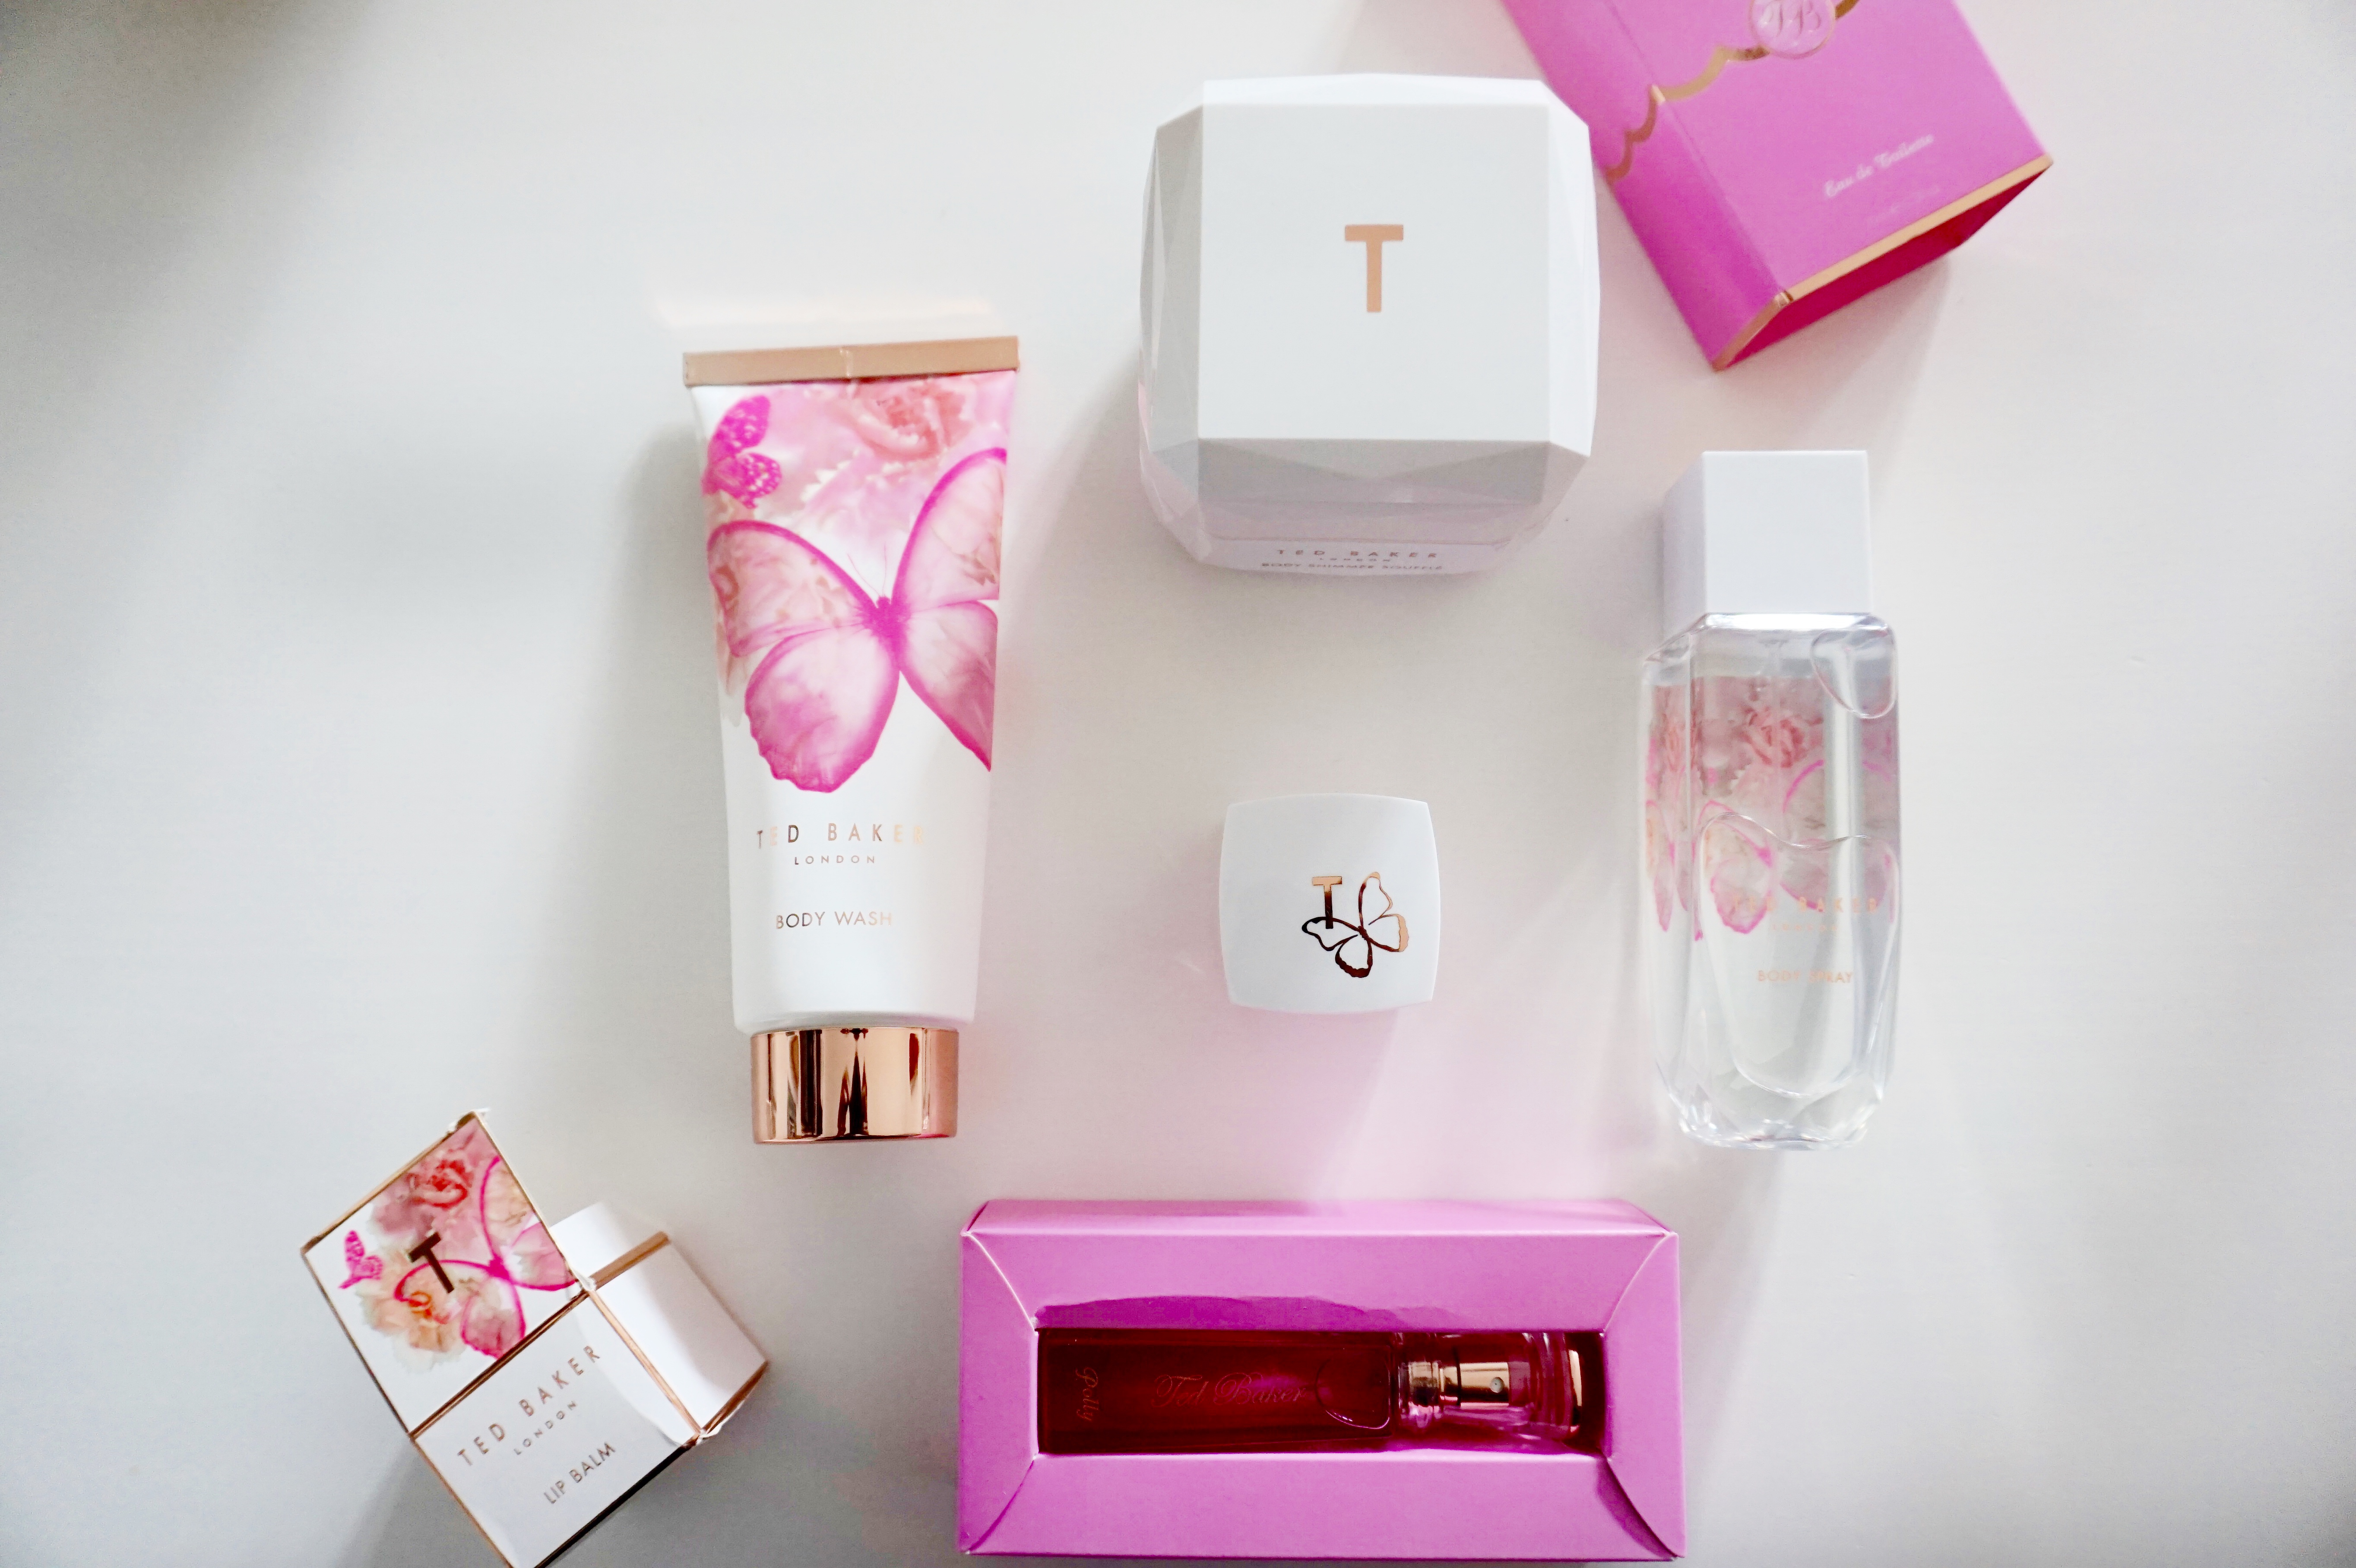 ted-baker-fit-for-a-queen-pink-white-vanity-case-raychels-says